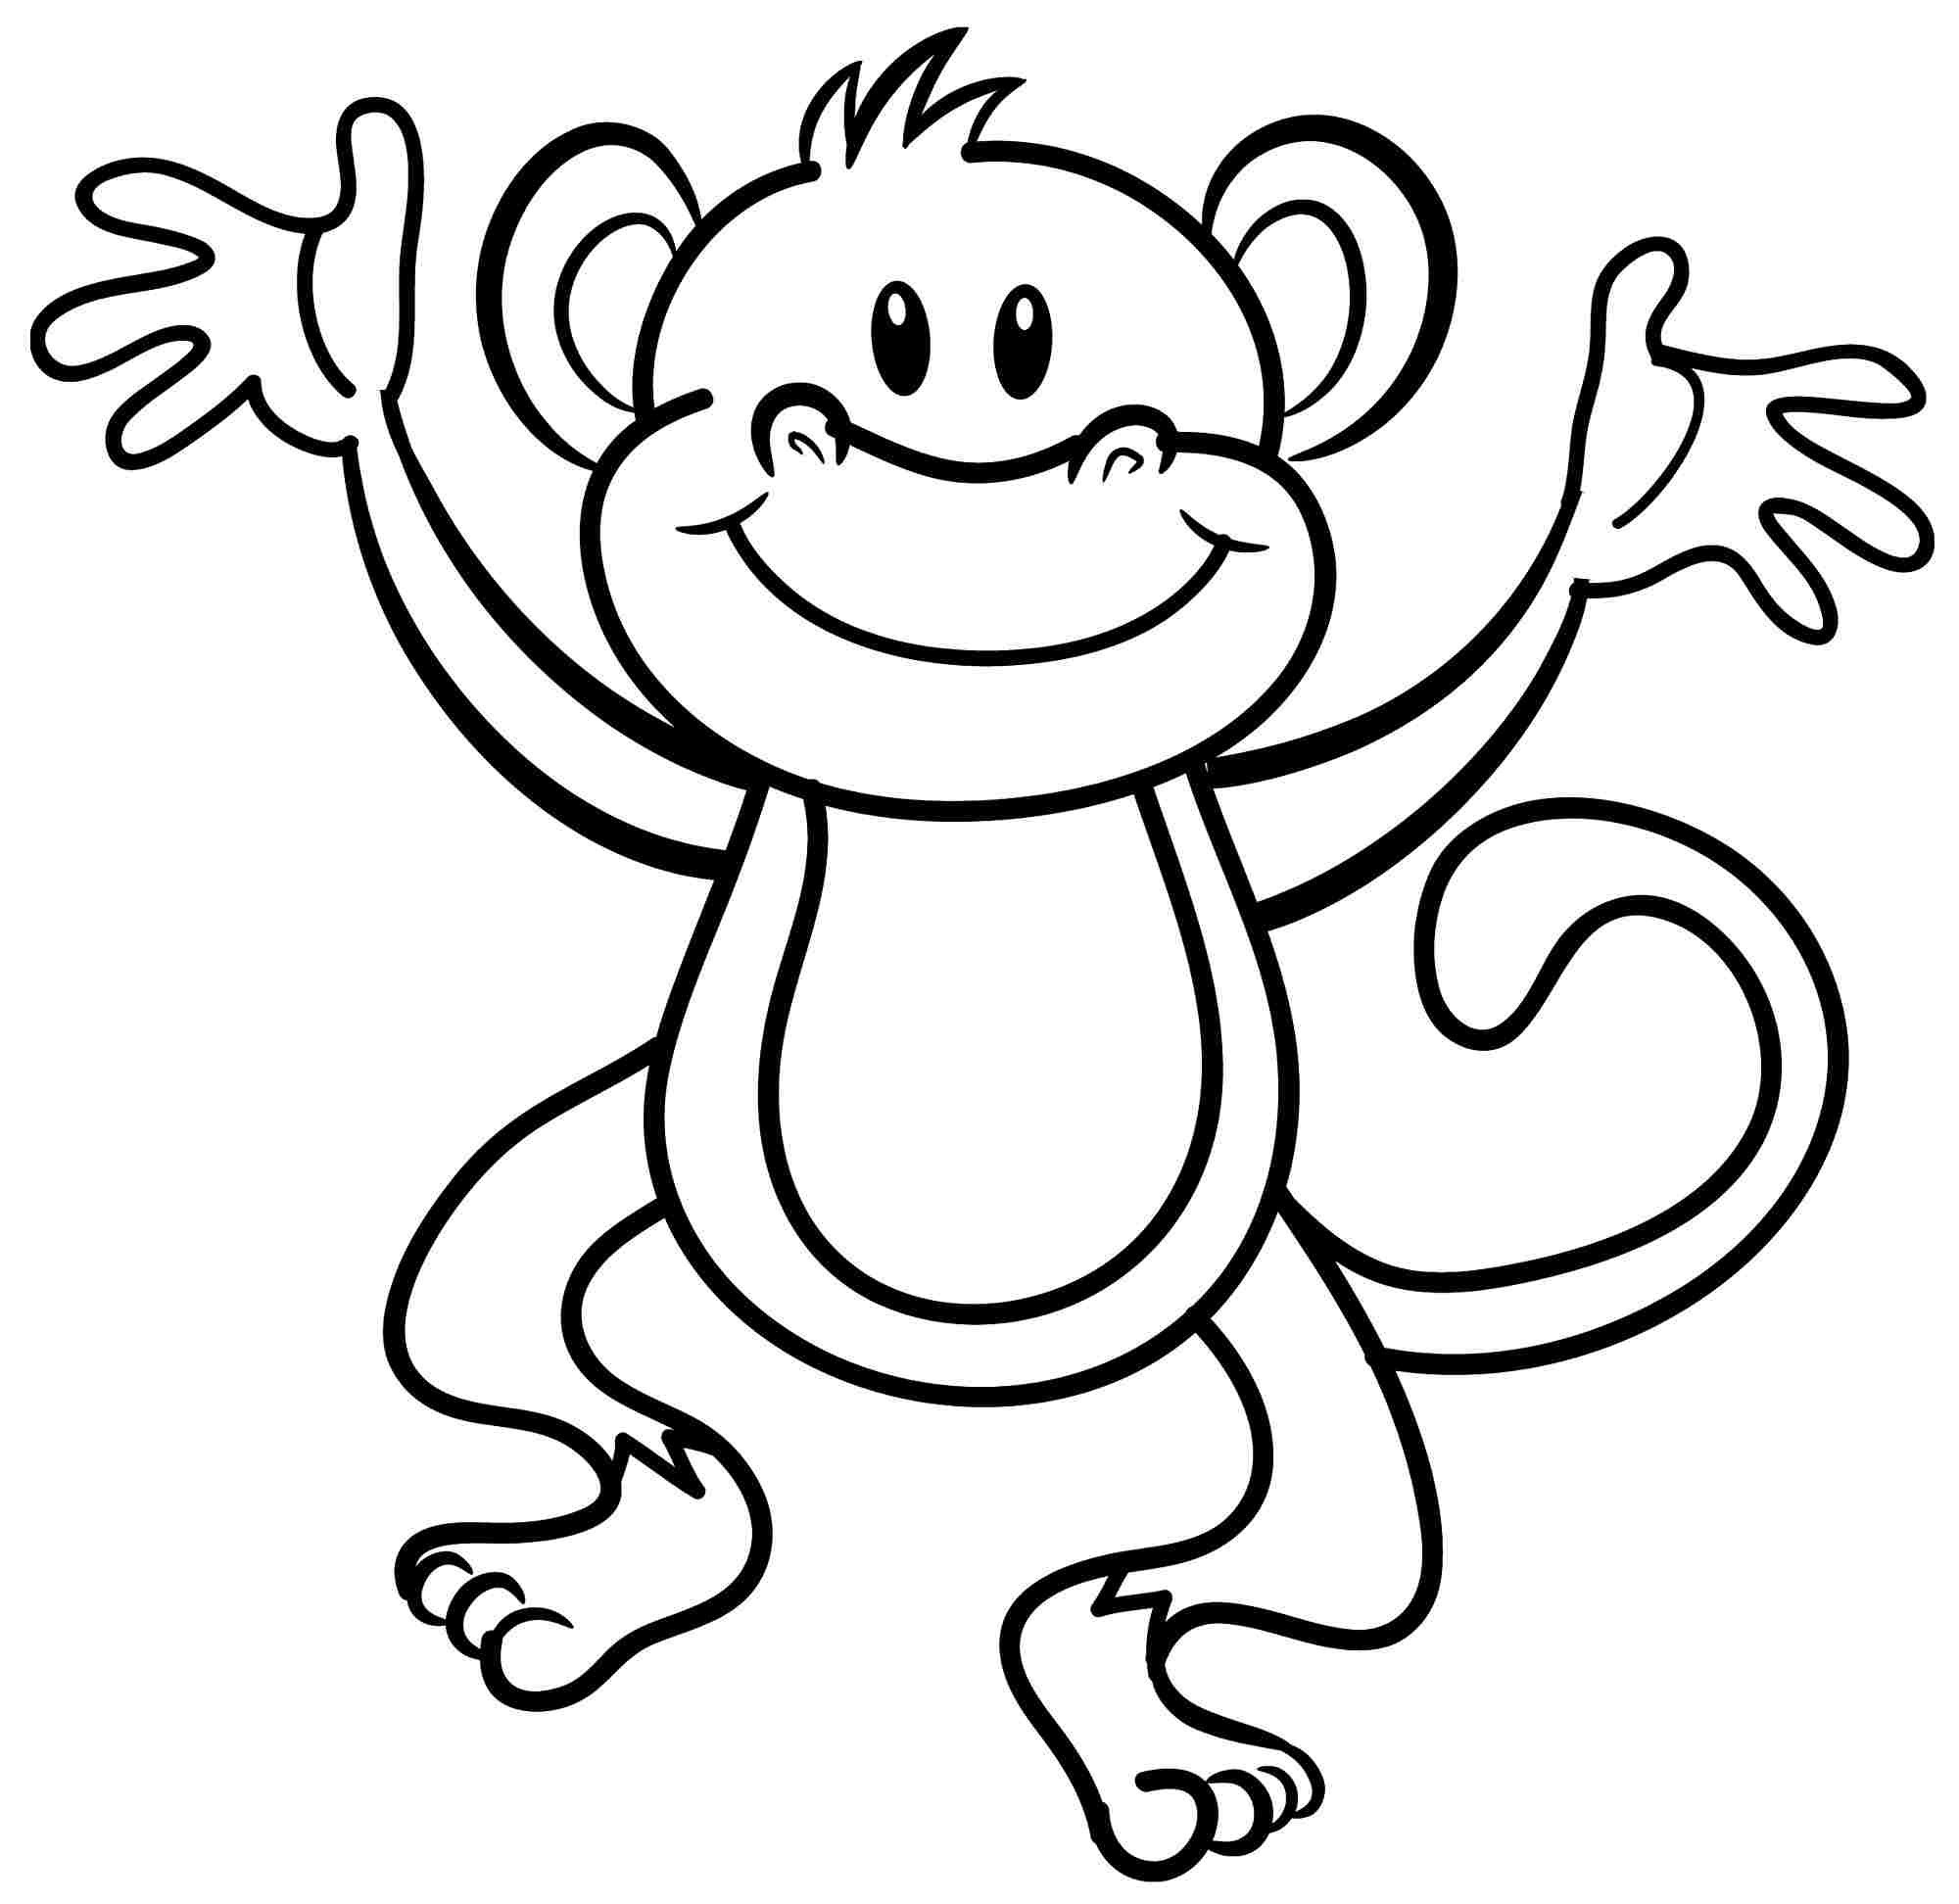 2000x1944 Coloring Pages Baby Monkey Best Gallery Free Beautiful Monkeys Acpra